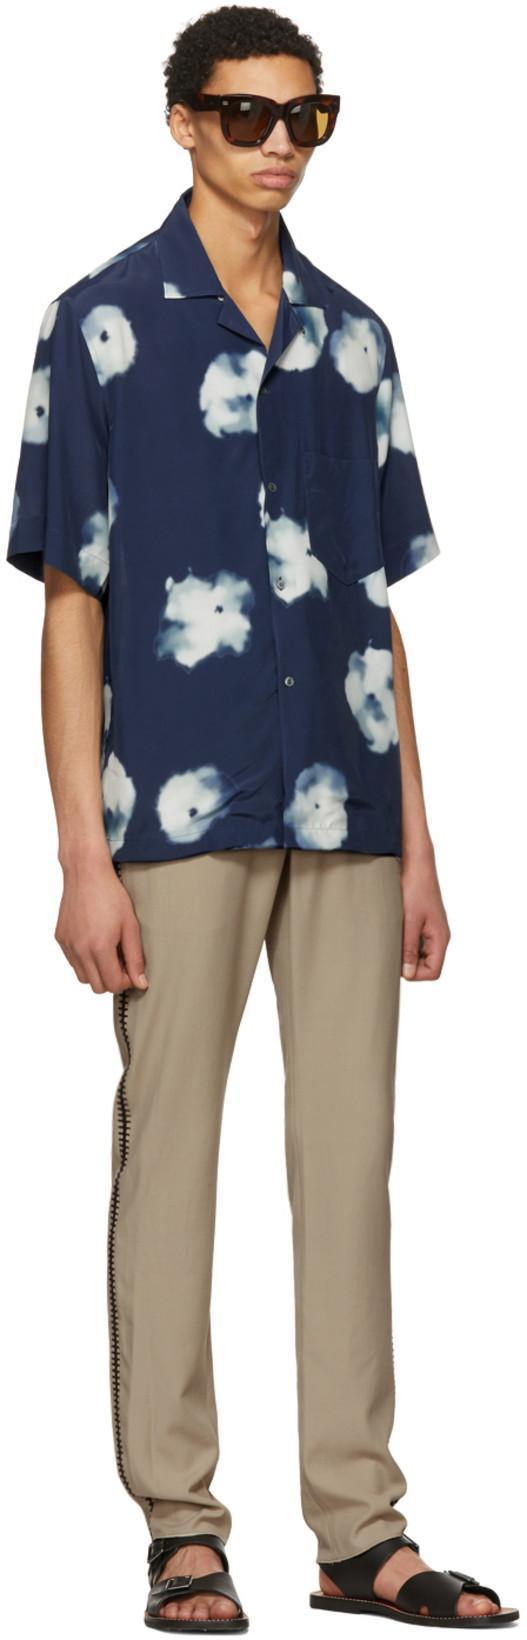 ccc21f42c5 Acne Studios Elms Short-Sleeved Floral-Print Shirt In Indigo